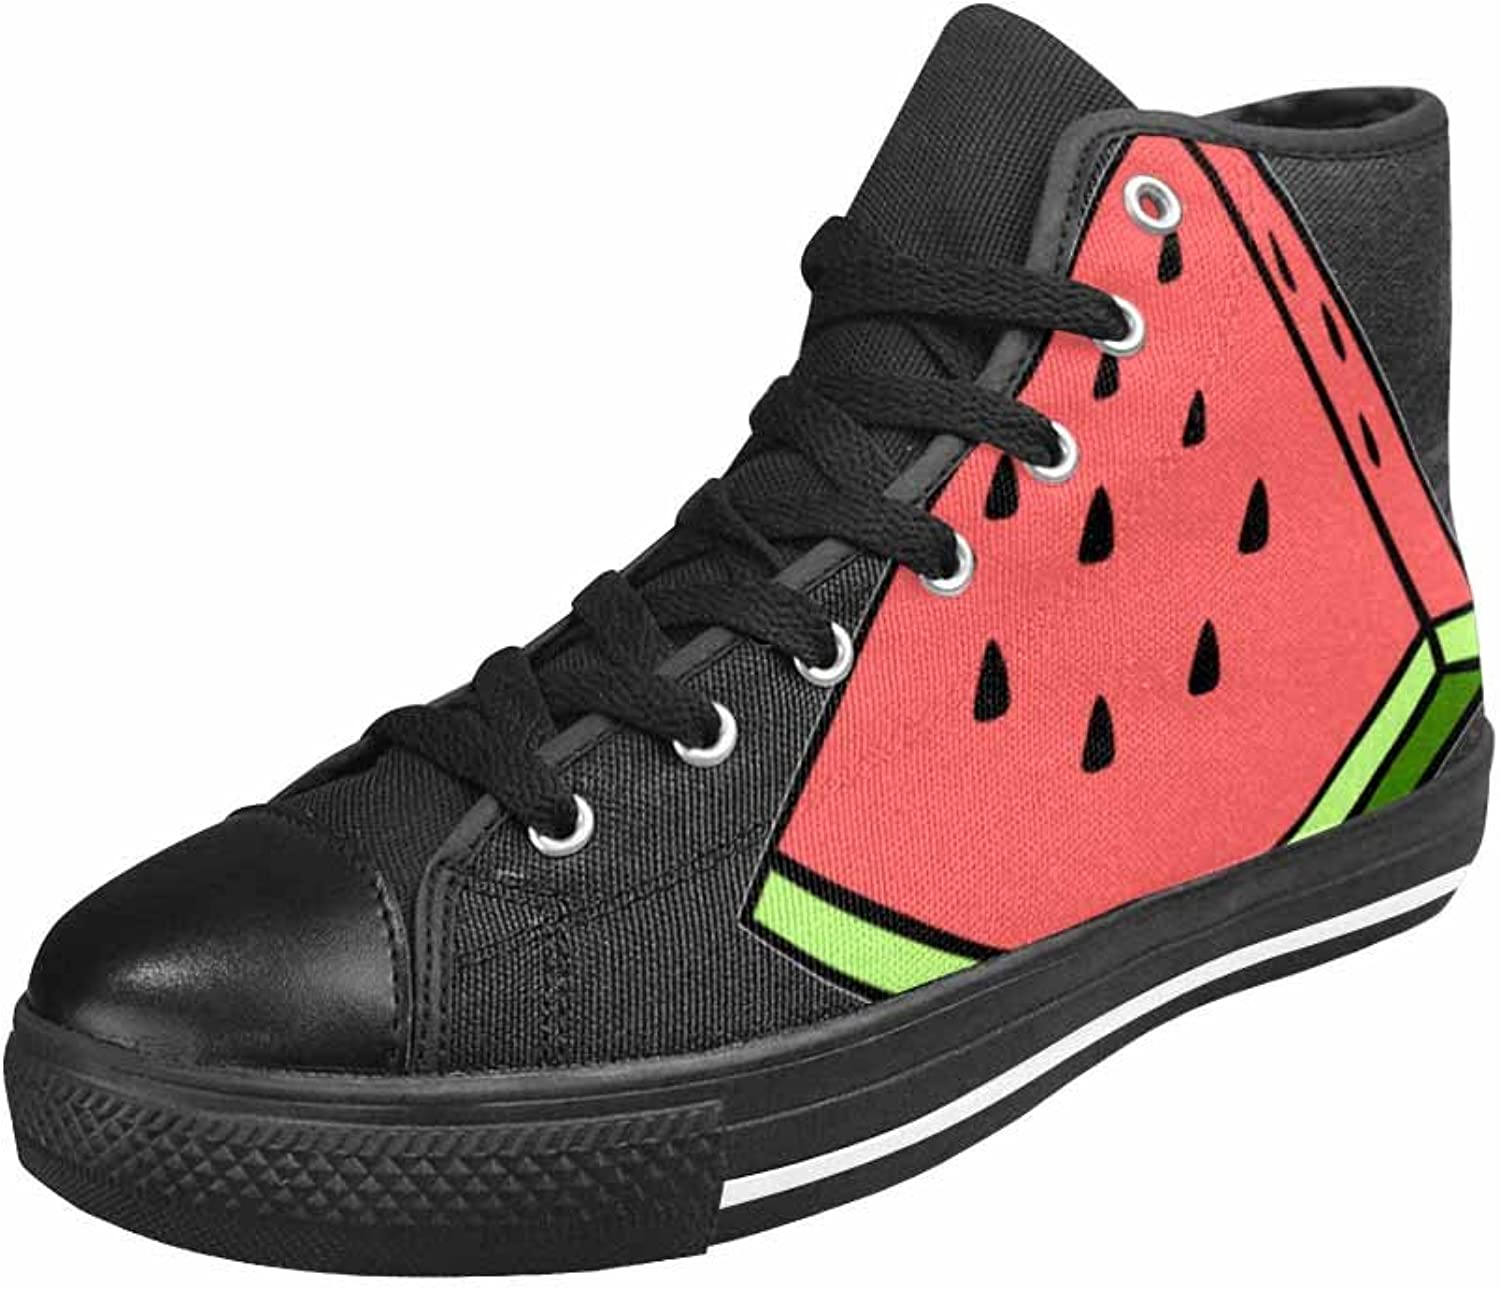 Qchengshix Womens Double Tounge Lace-up Sneaker Canvas Casual Style Comfort shoes So Fresh Watermelon